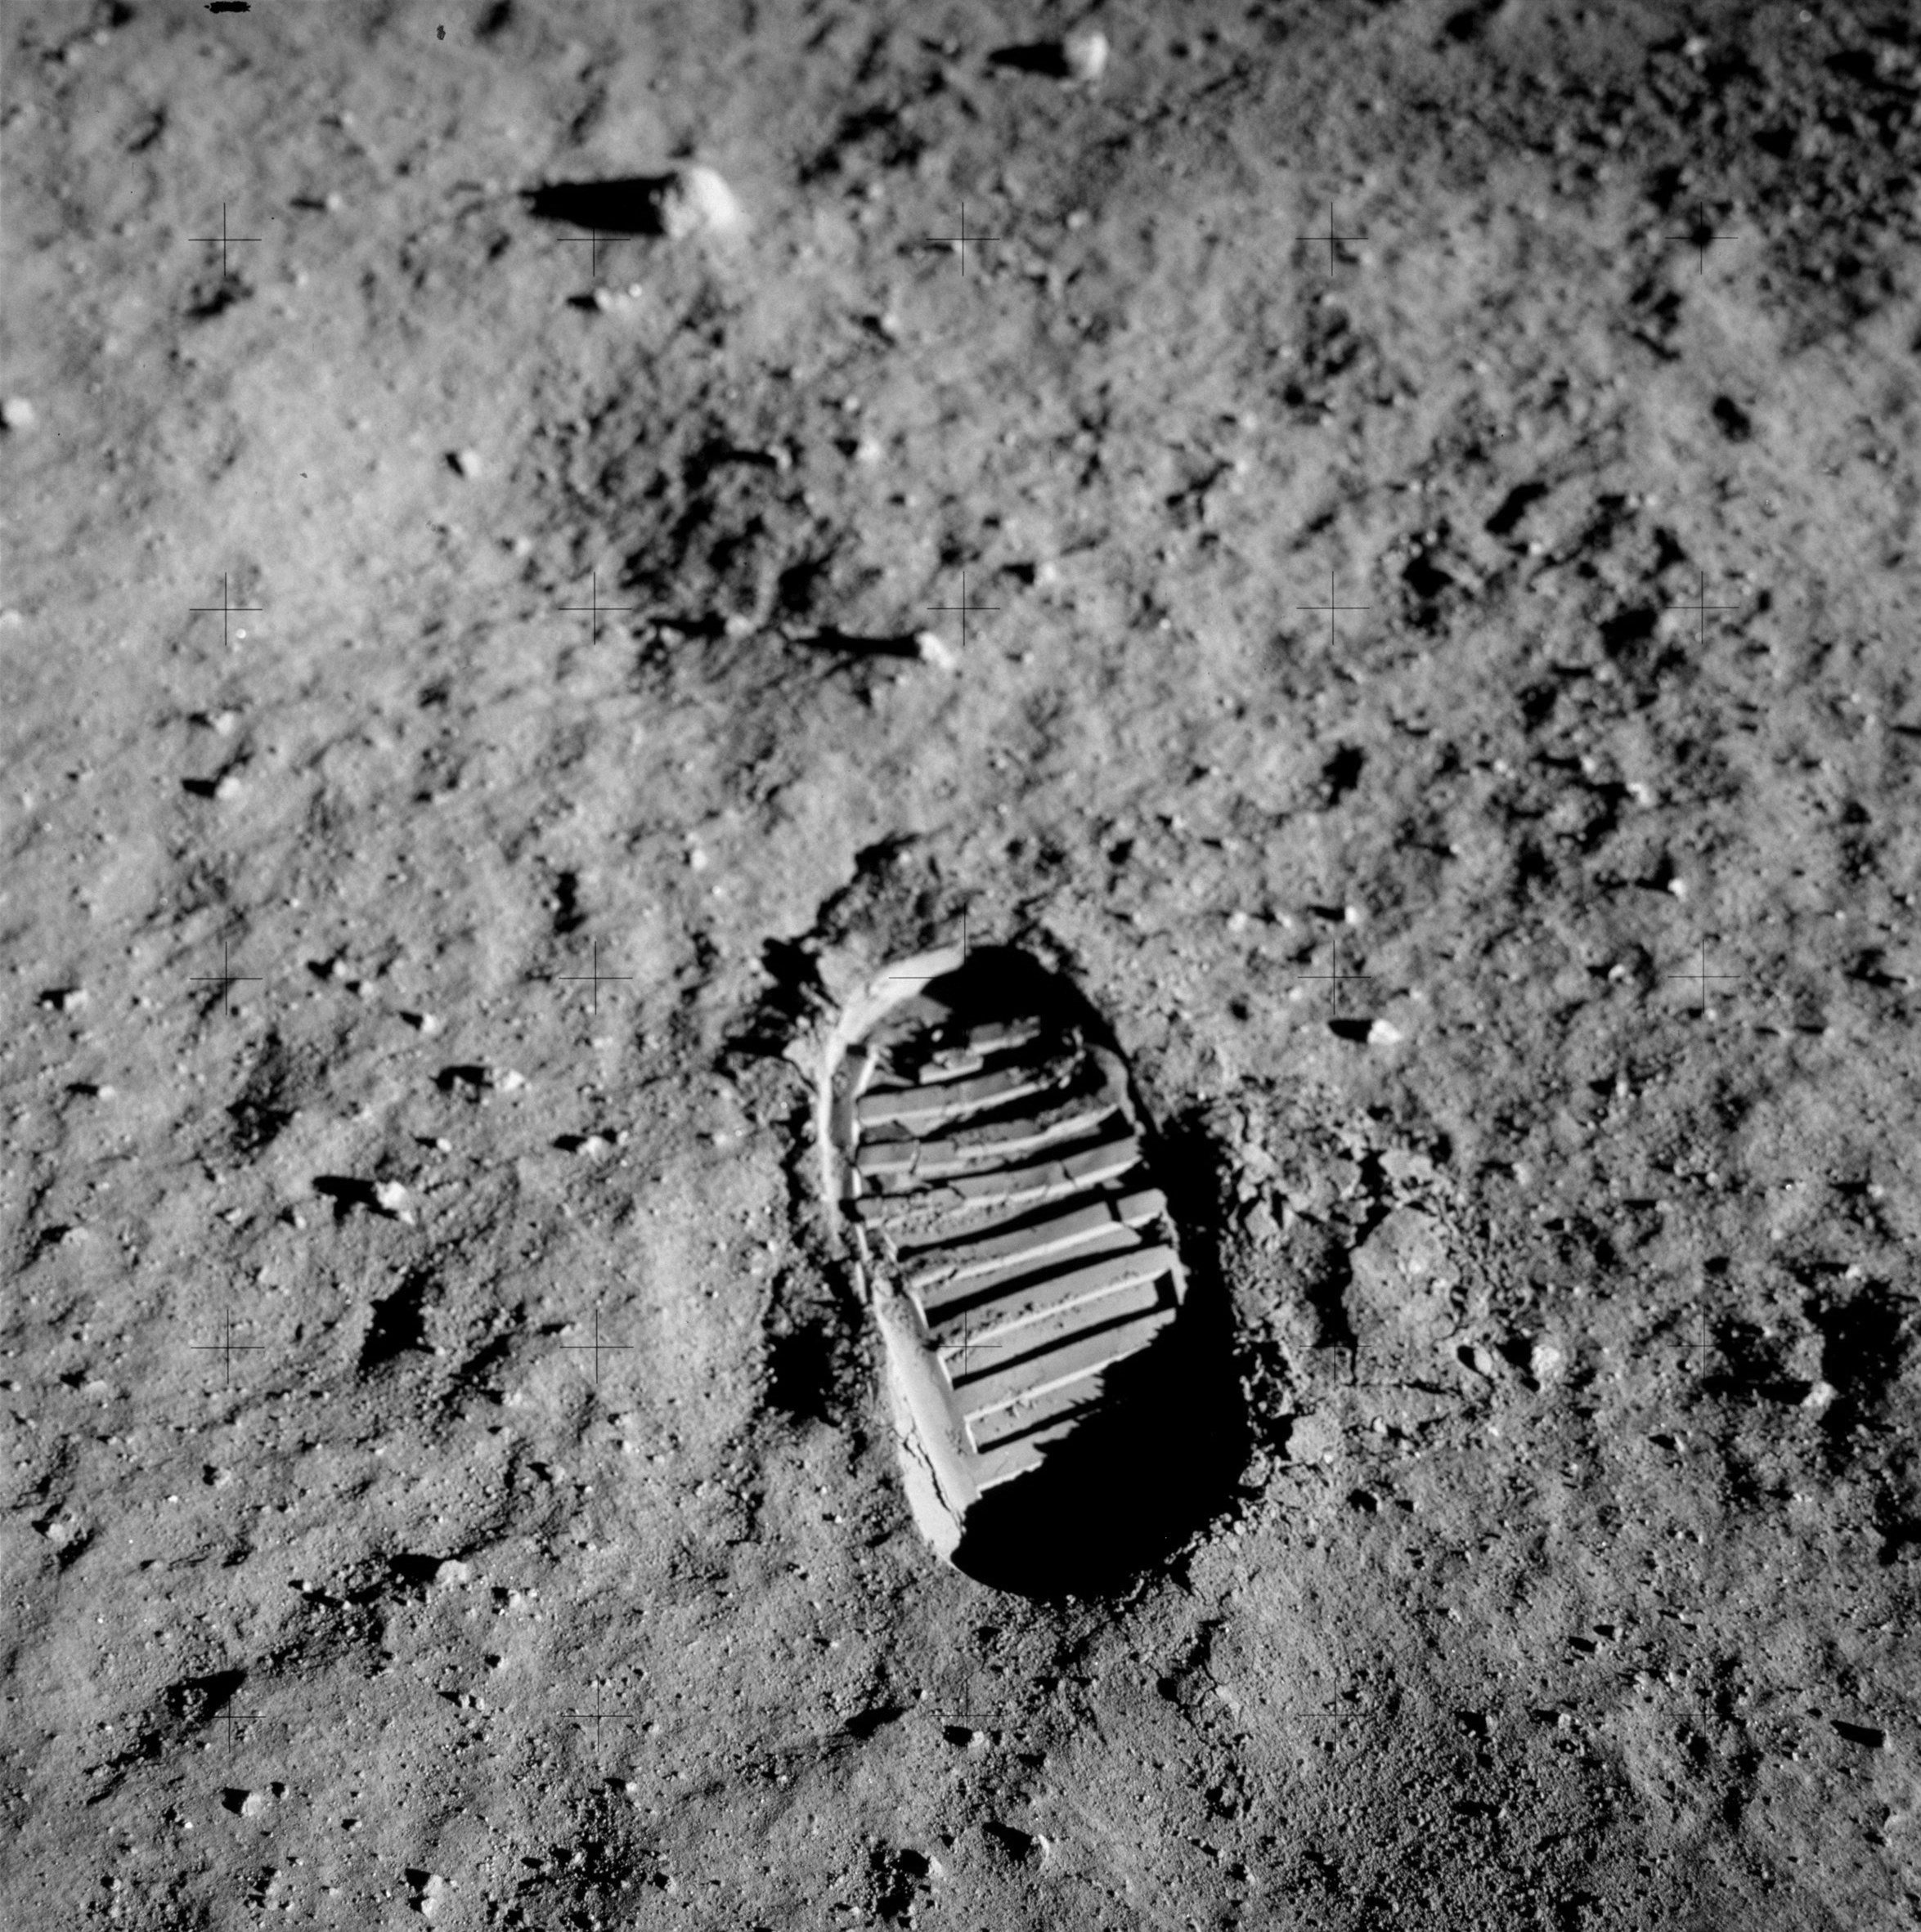 Apollo 11 Mission Boot print on the moon.